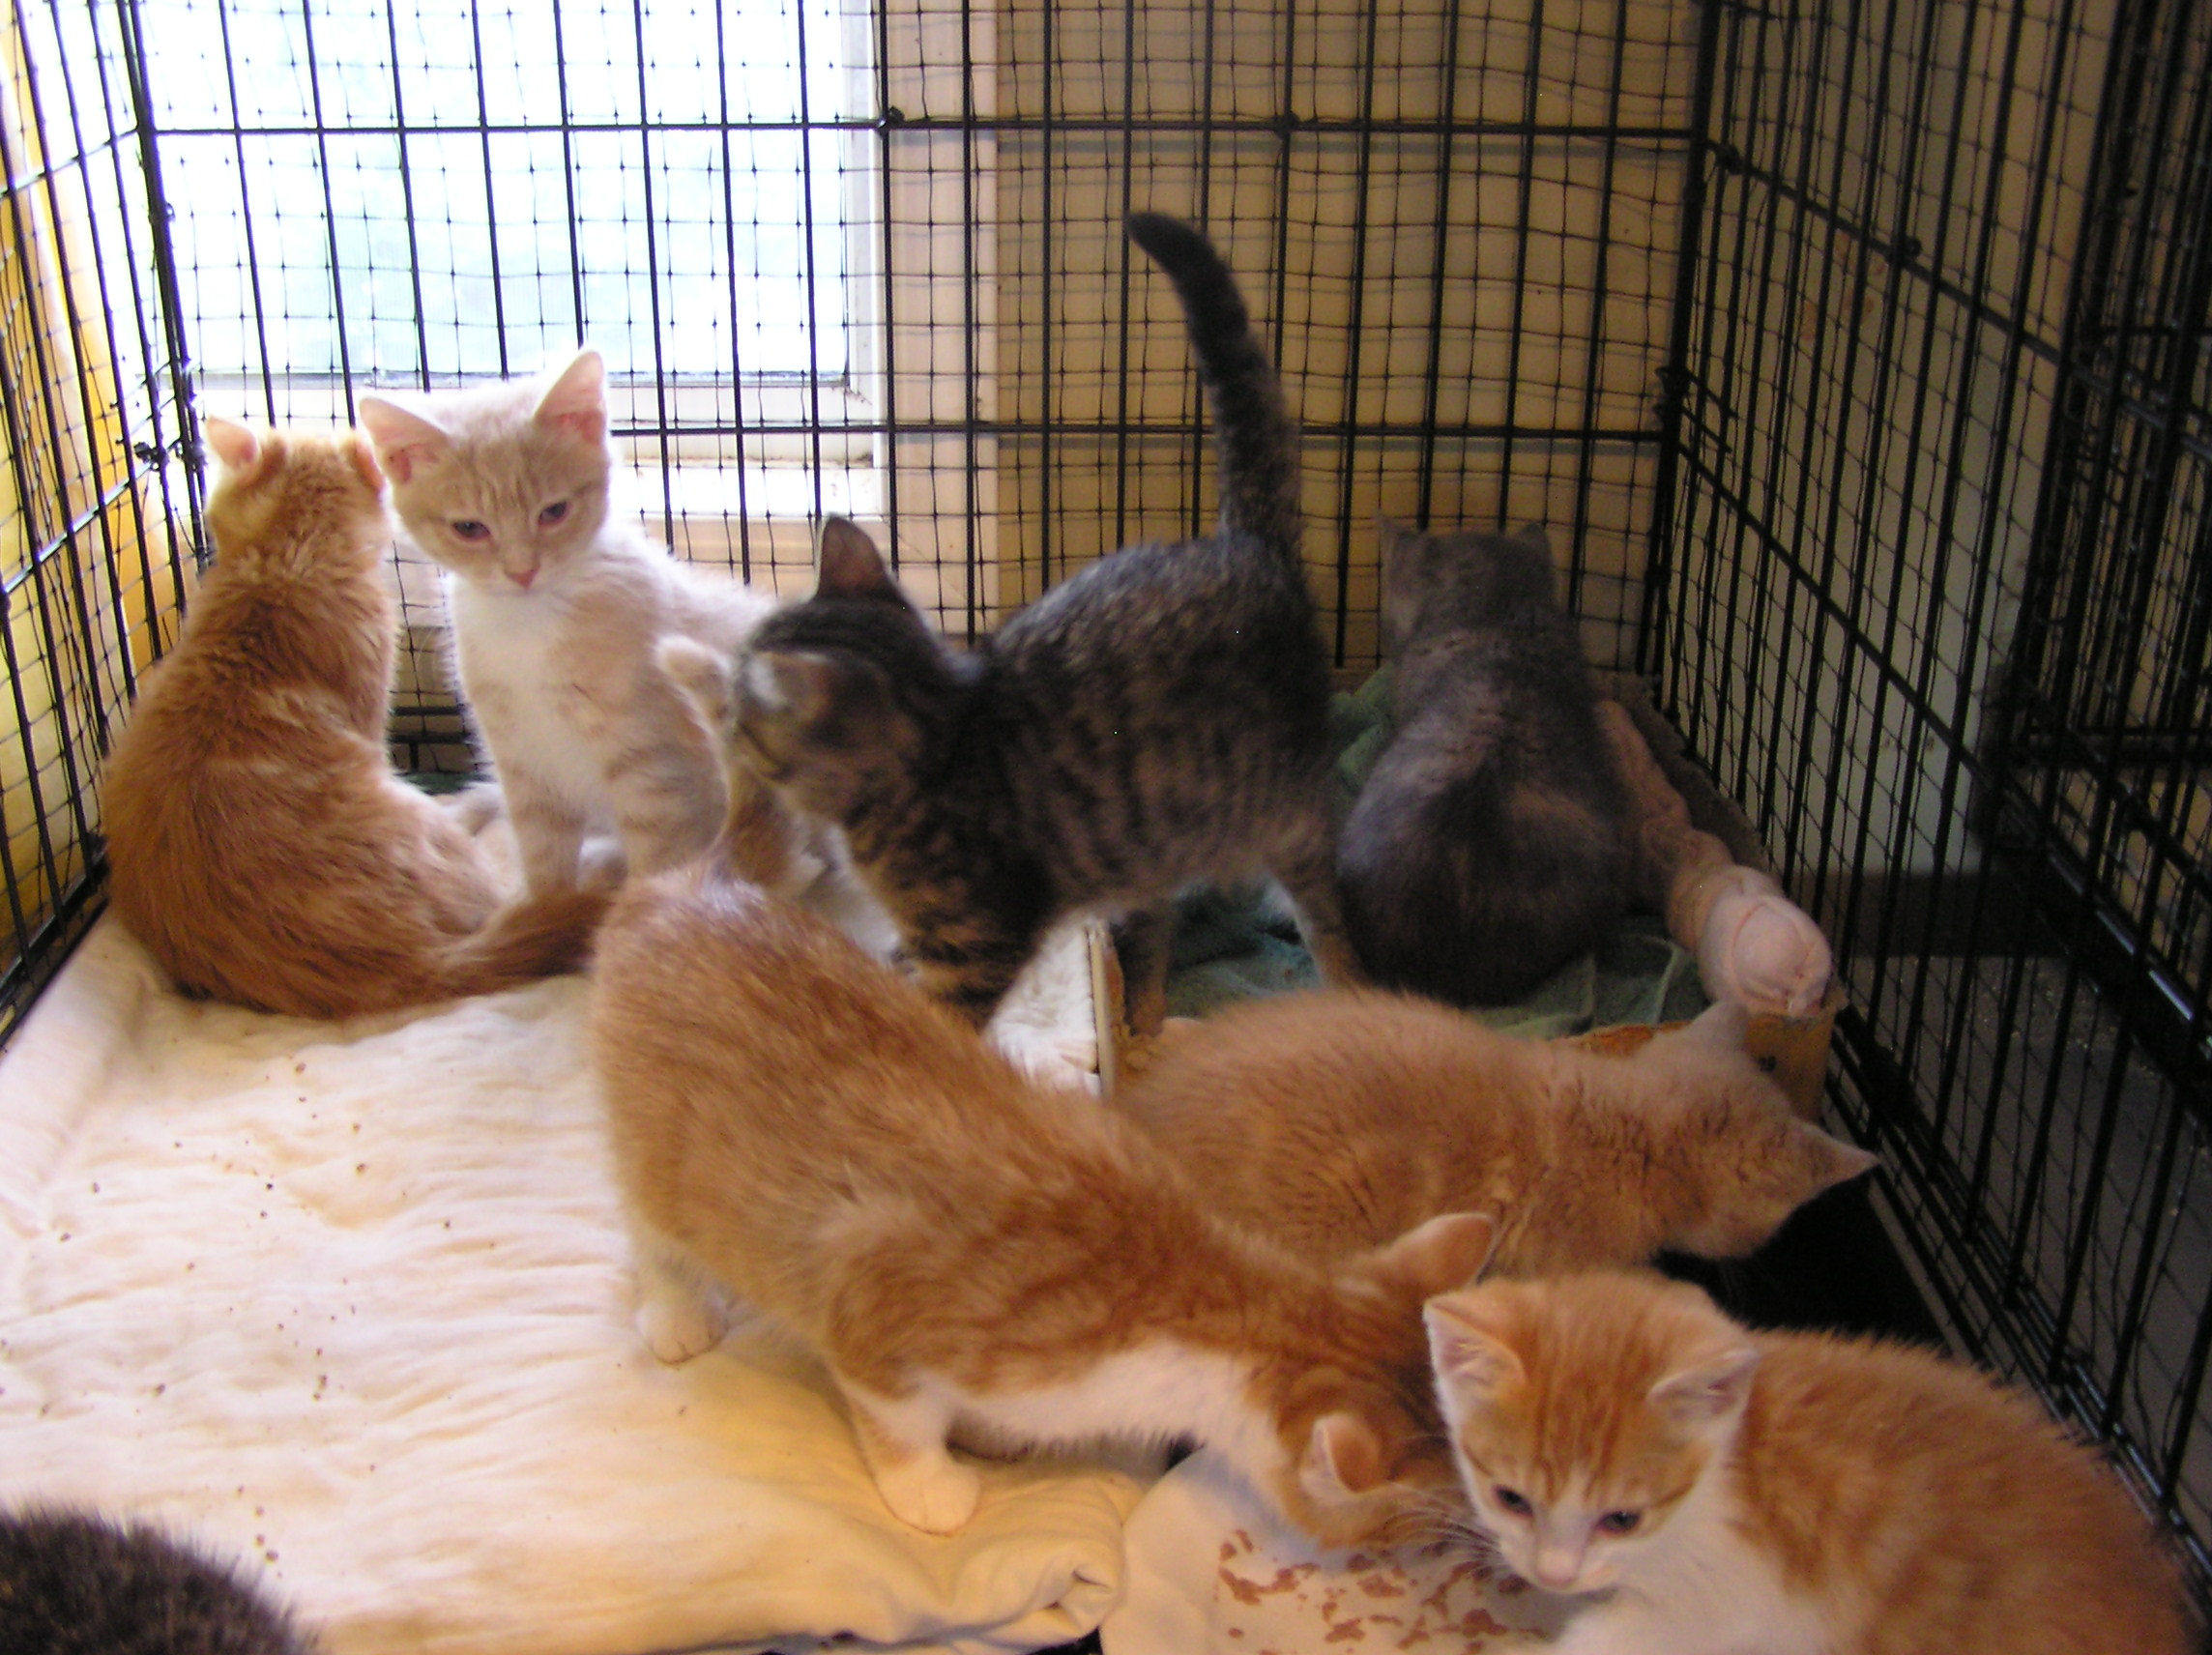 Pet Store Reform Christie Lagally